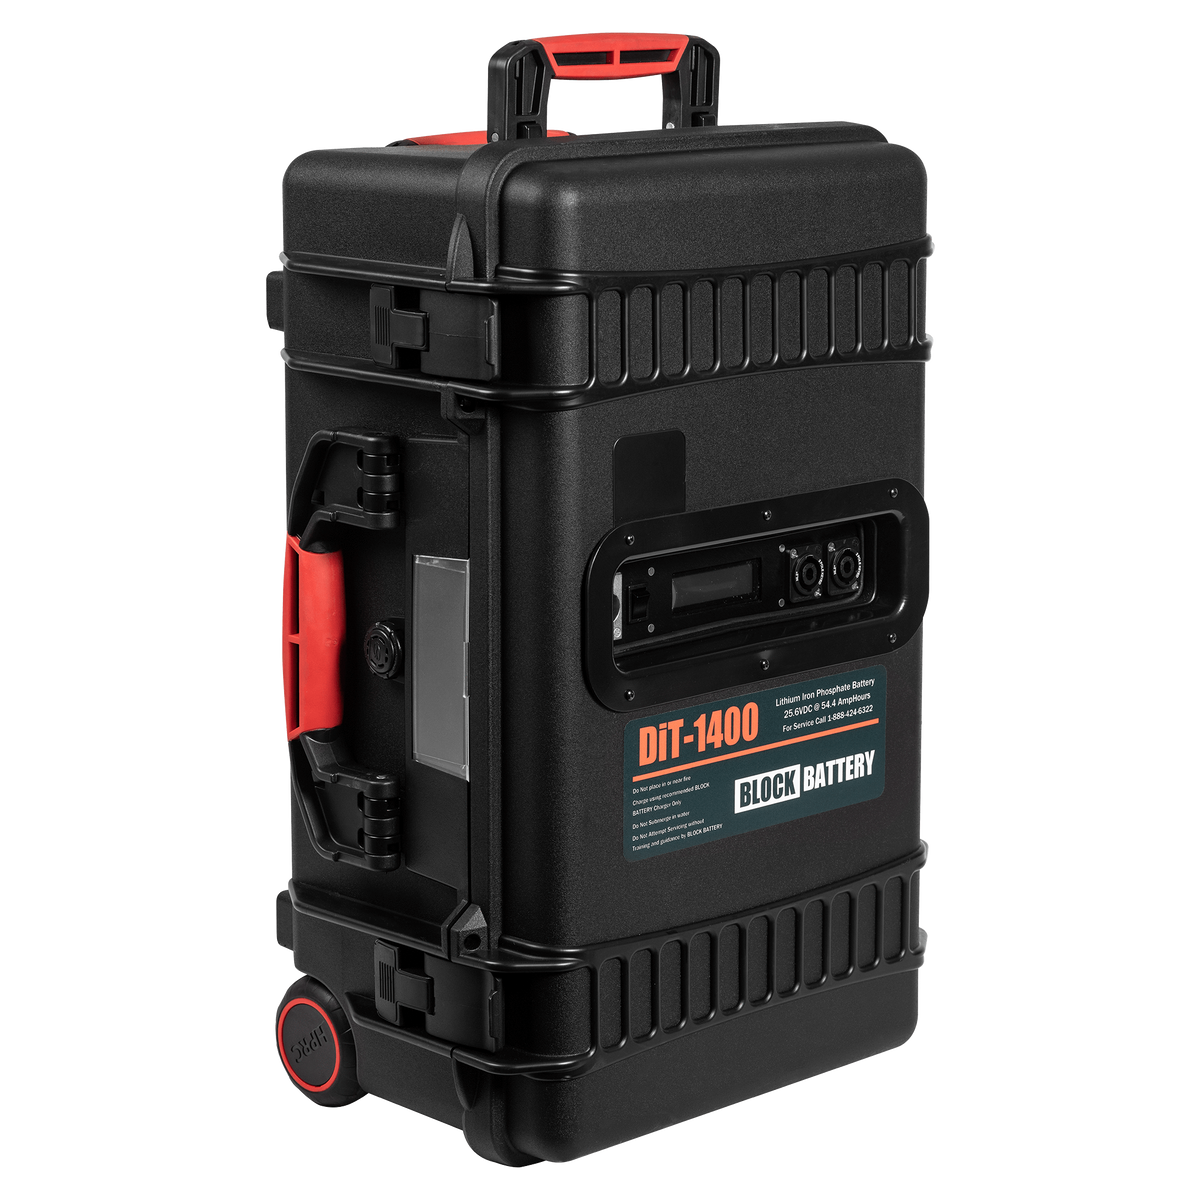 Block Battery DIT-1400